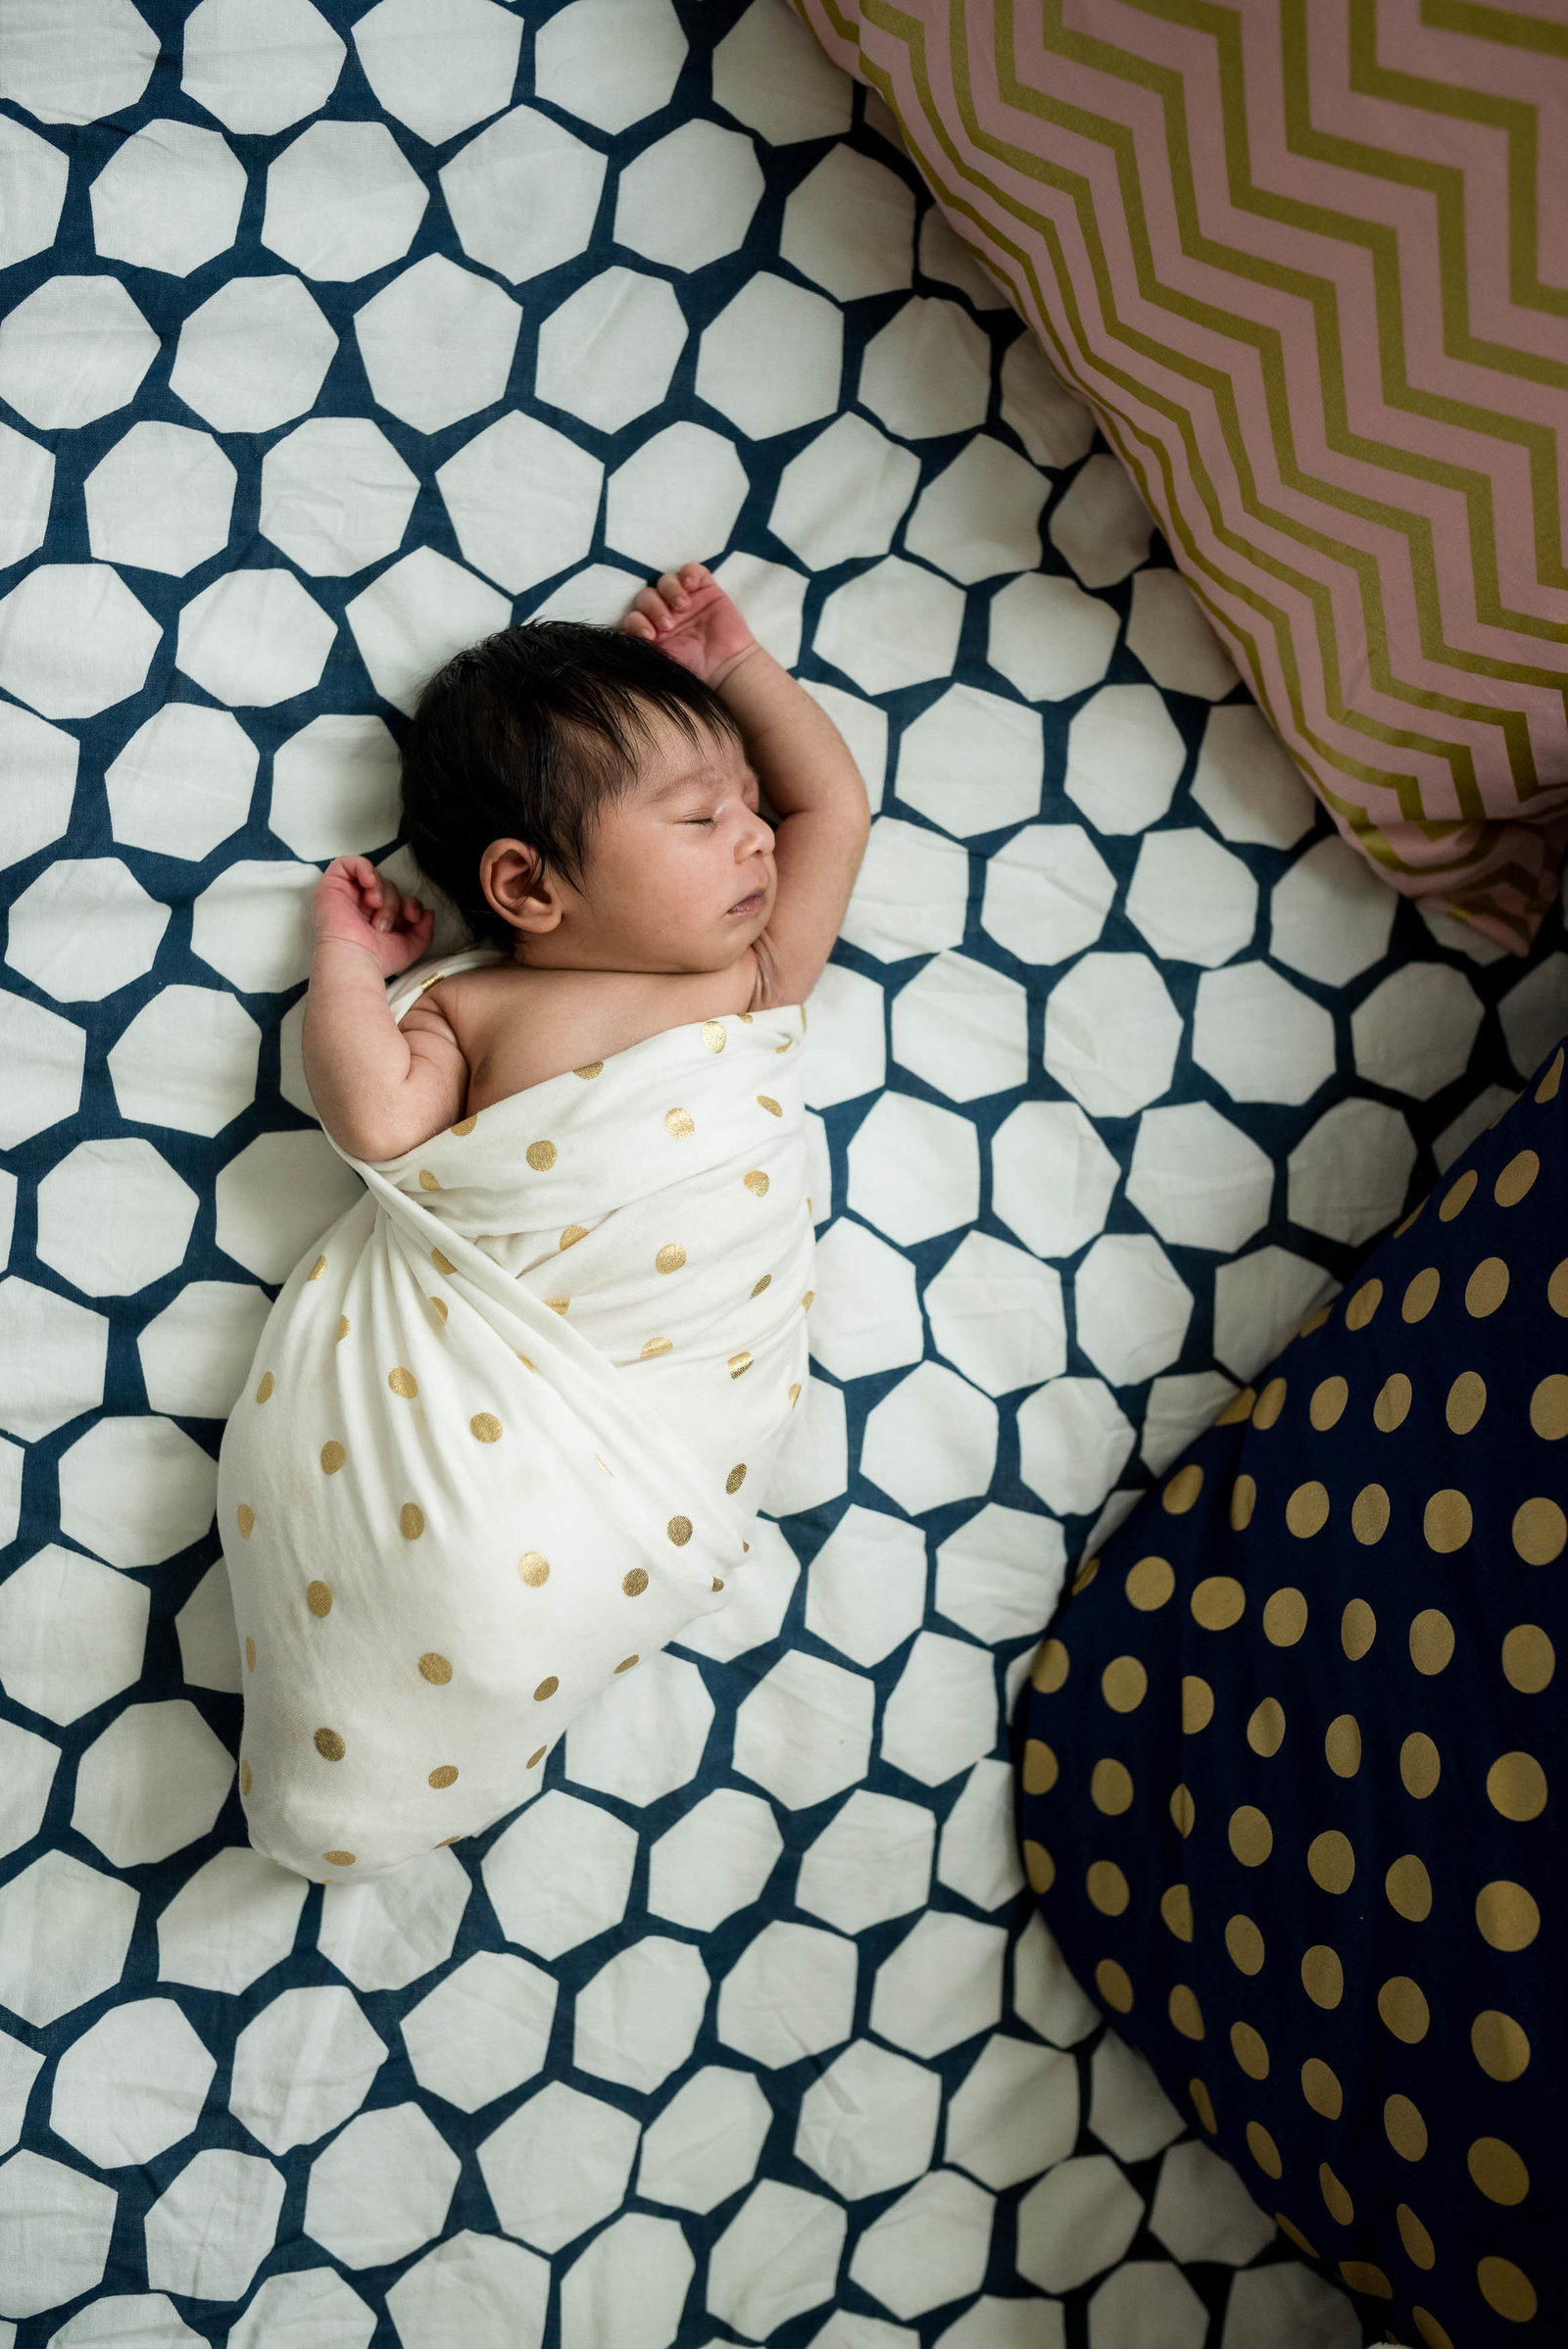 Boston-Newborn-Photographer-Lifestyle-Documentary-Home-Styled-Session-389